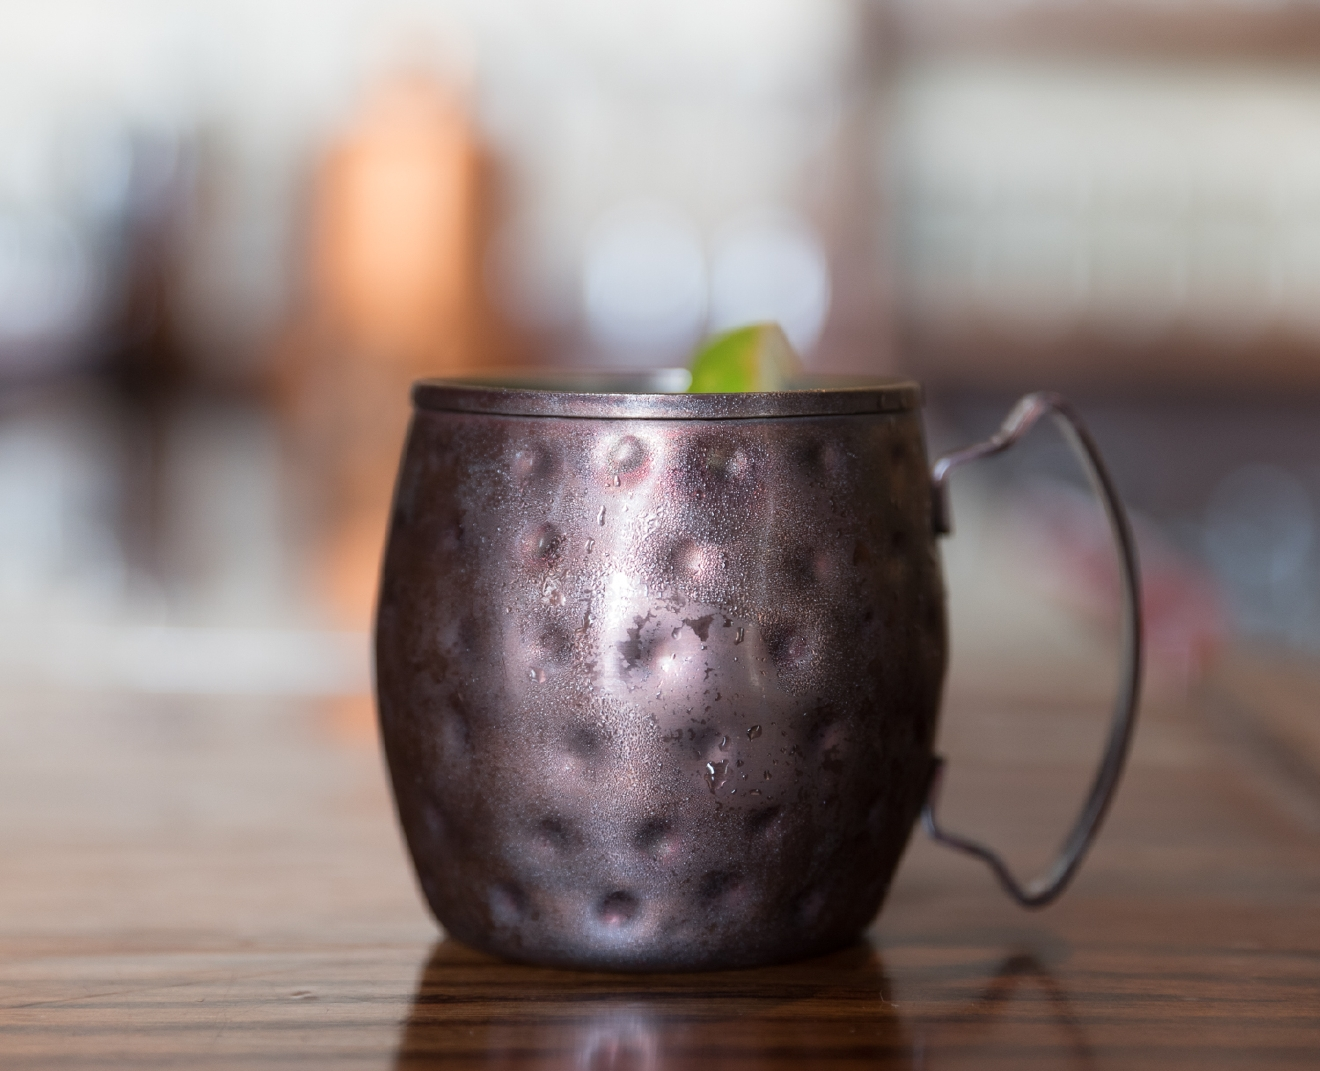 Classic Moscow Mule with OYO Vodka from Columbus, Ohio / Image: Sherry Lachelle Photography